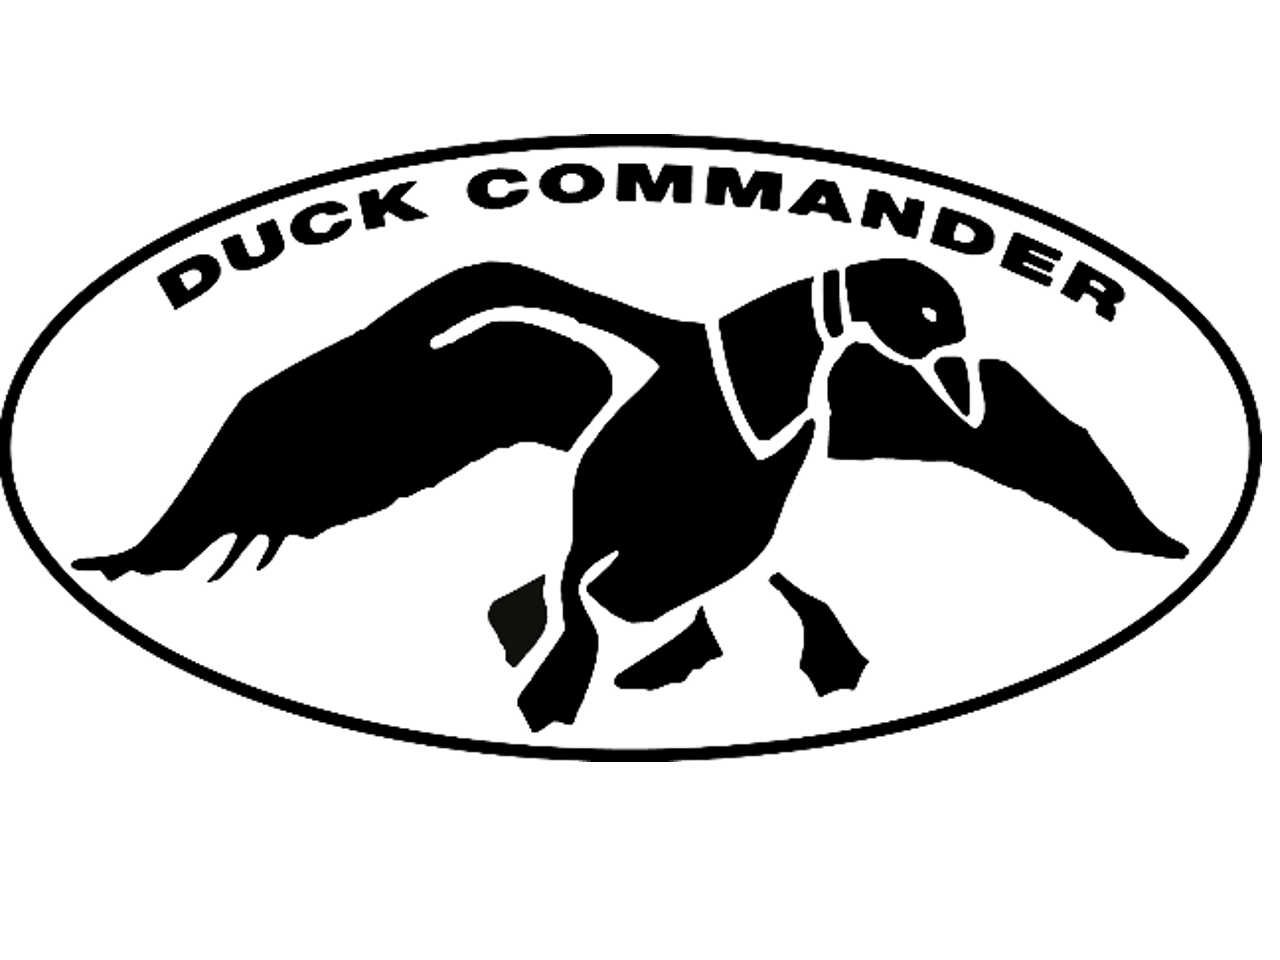 coloring pages of duck dynasty - duck dynasty logo images galleries